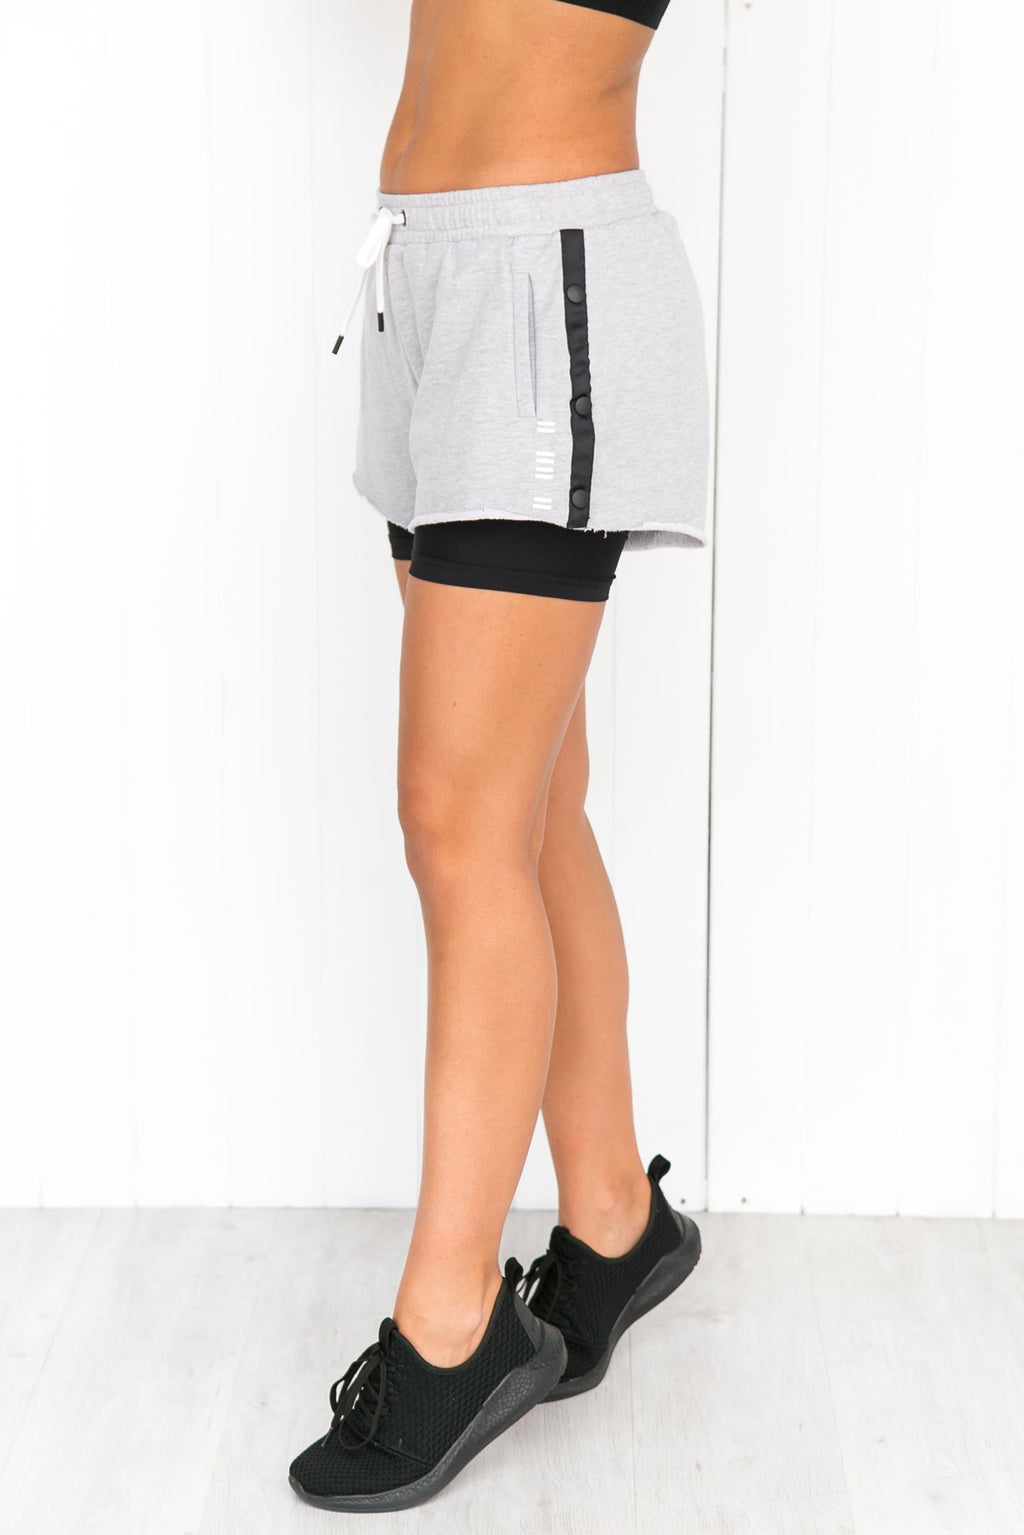 Sahara Layered Shorts - PURE DASH